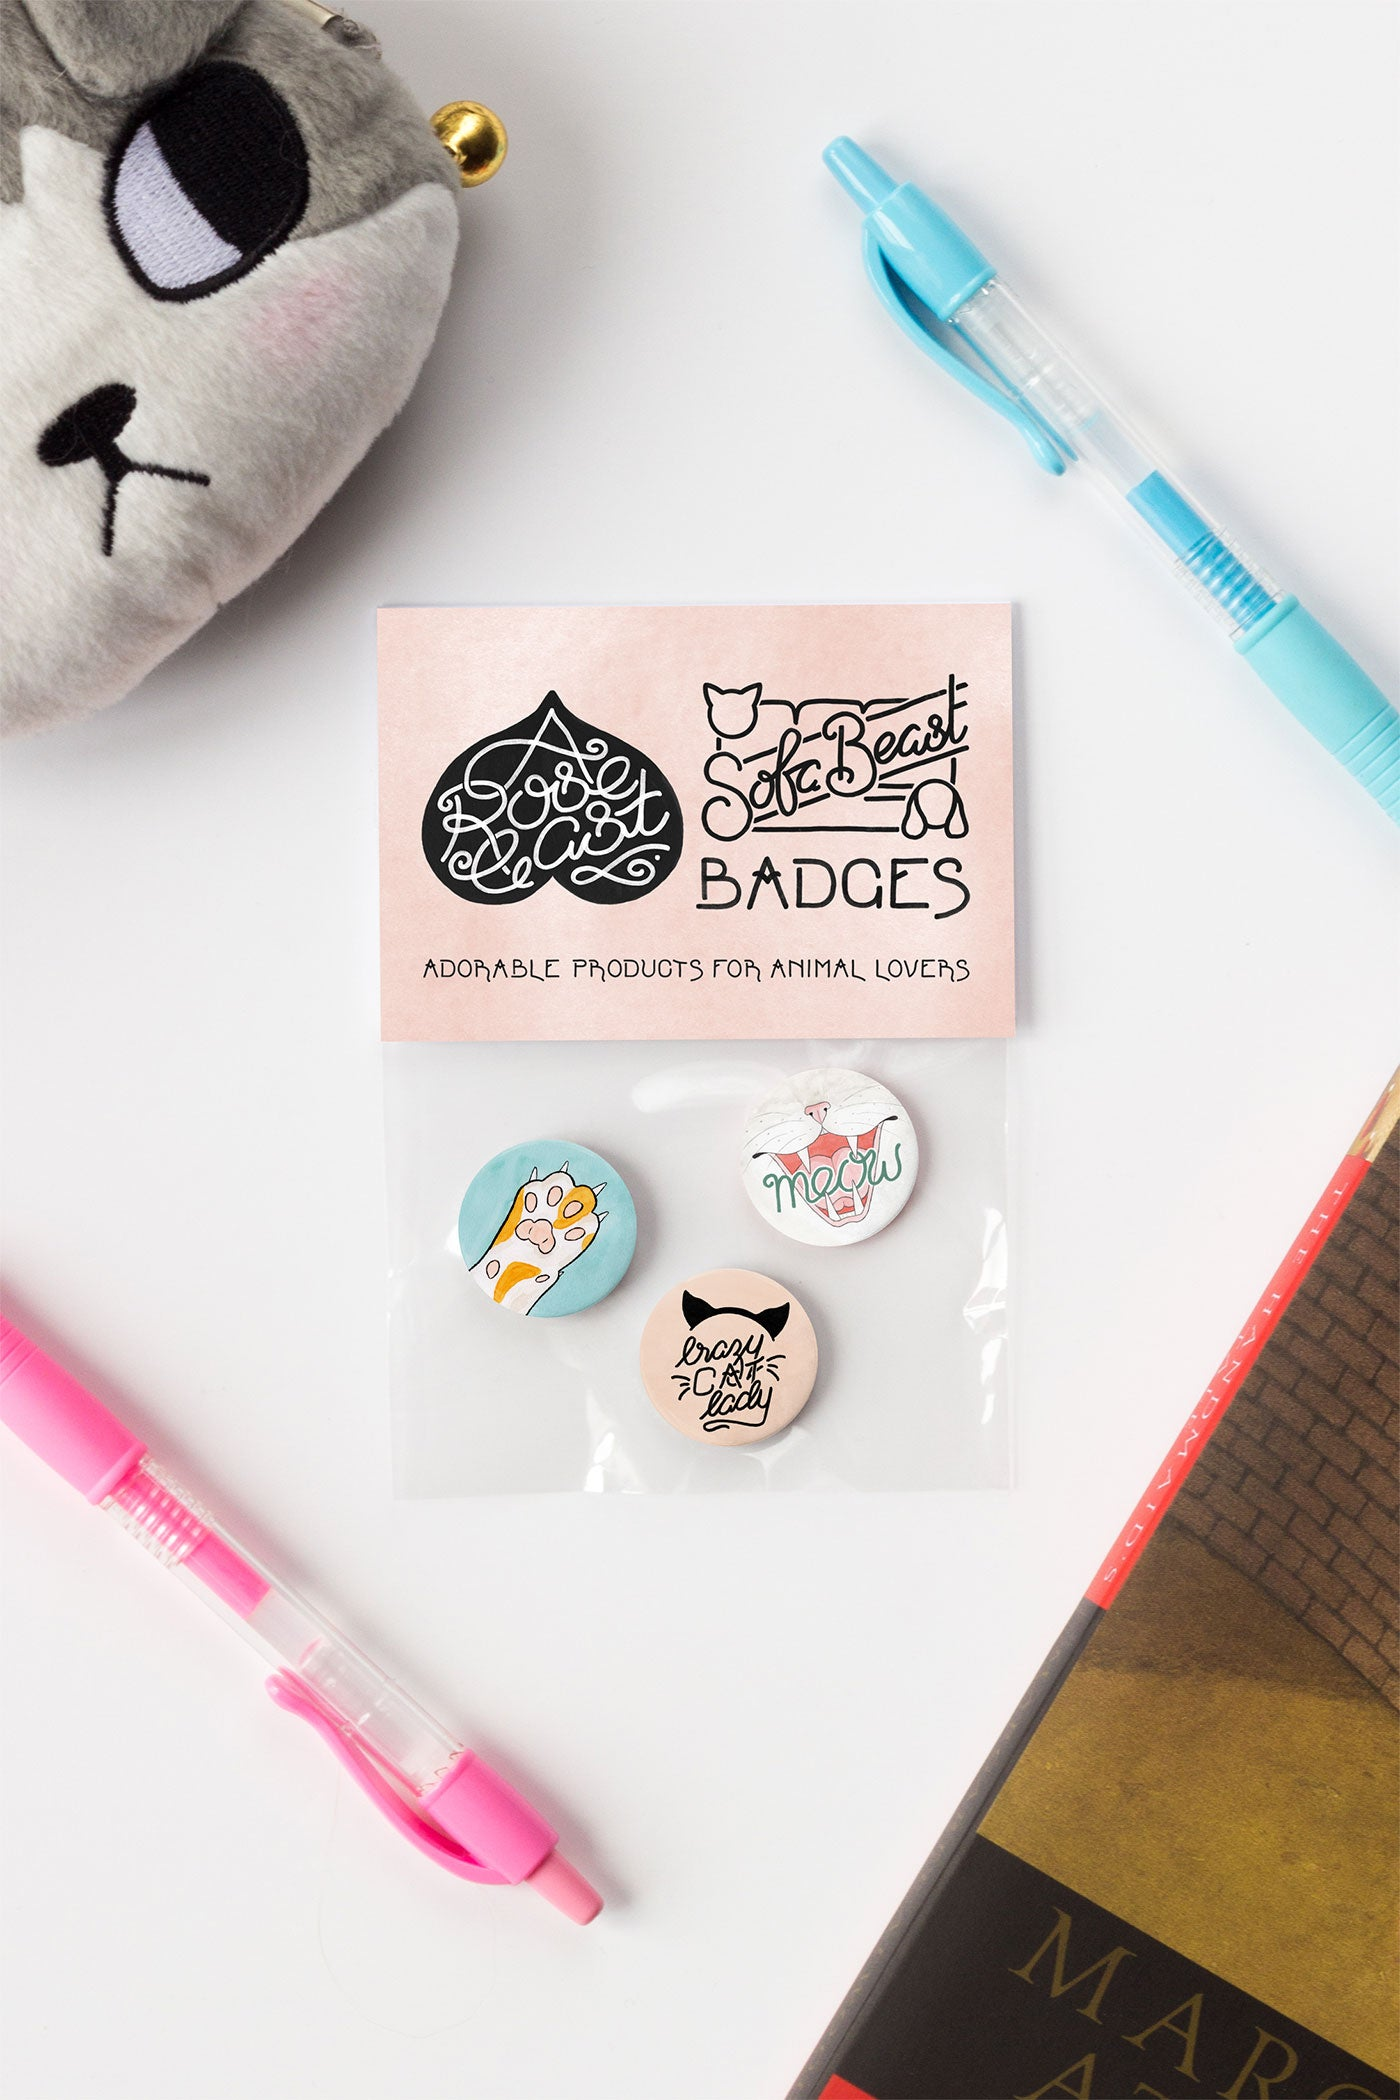 Crazy Cat Lady Badges, the Perfect Gift for Cat Lovers